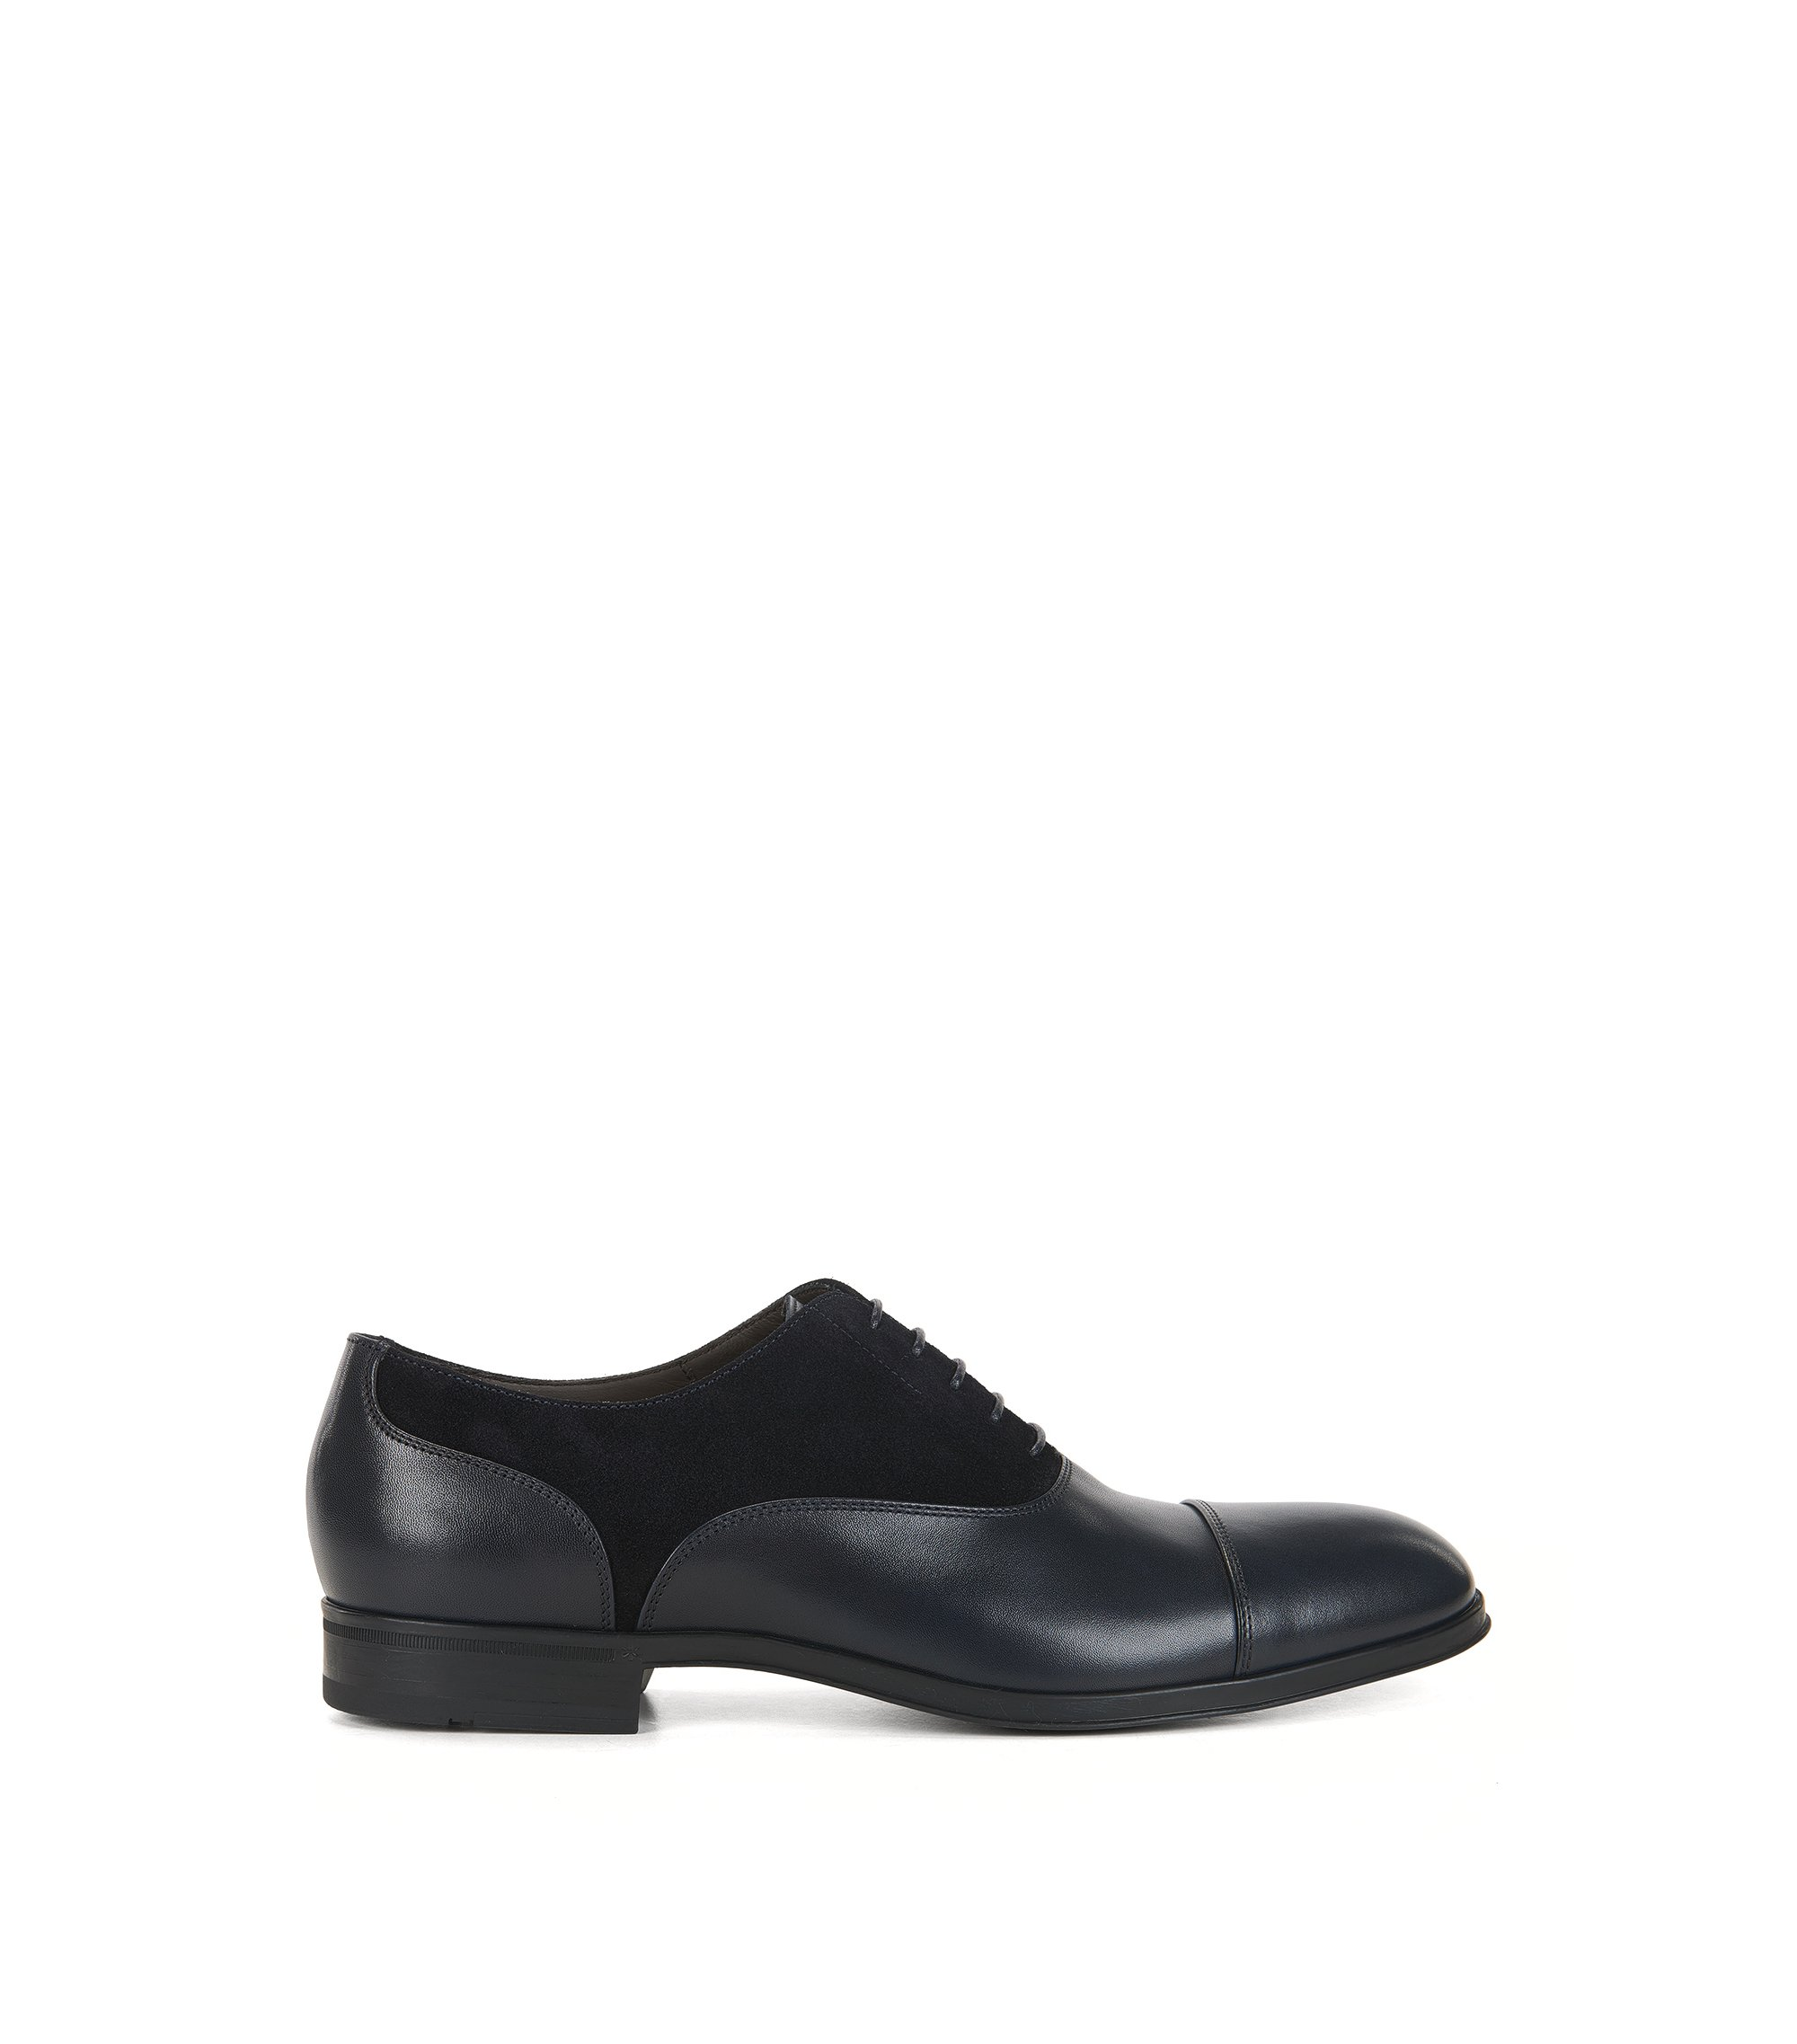 Suede & Leather Saddle Dress Shoe | Eton Oxfr Sdct, Dark Blue